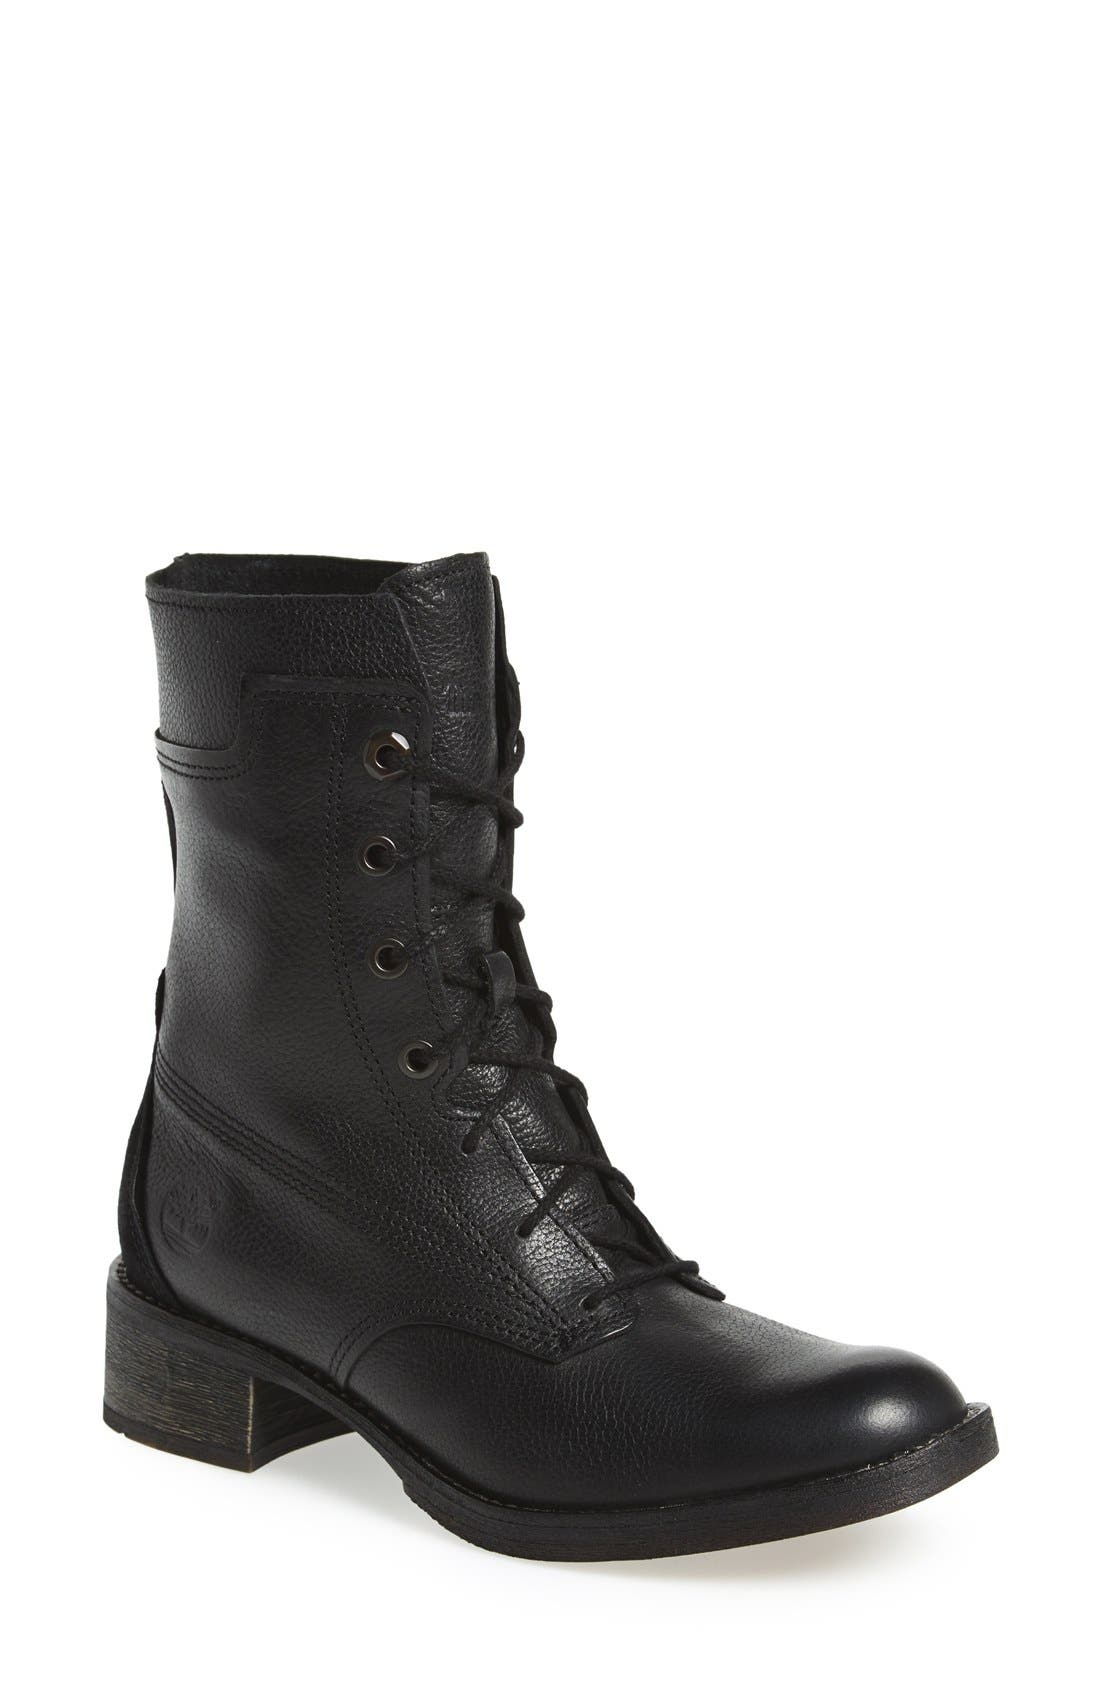 Main Image - Timberland Earthkeepers® 'Whittemore' Lace-Up Boot (Women)